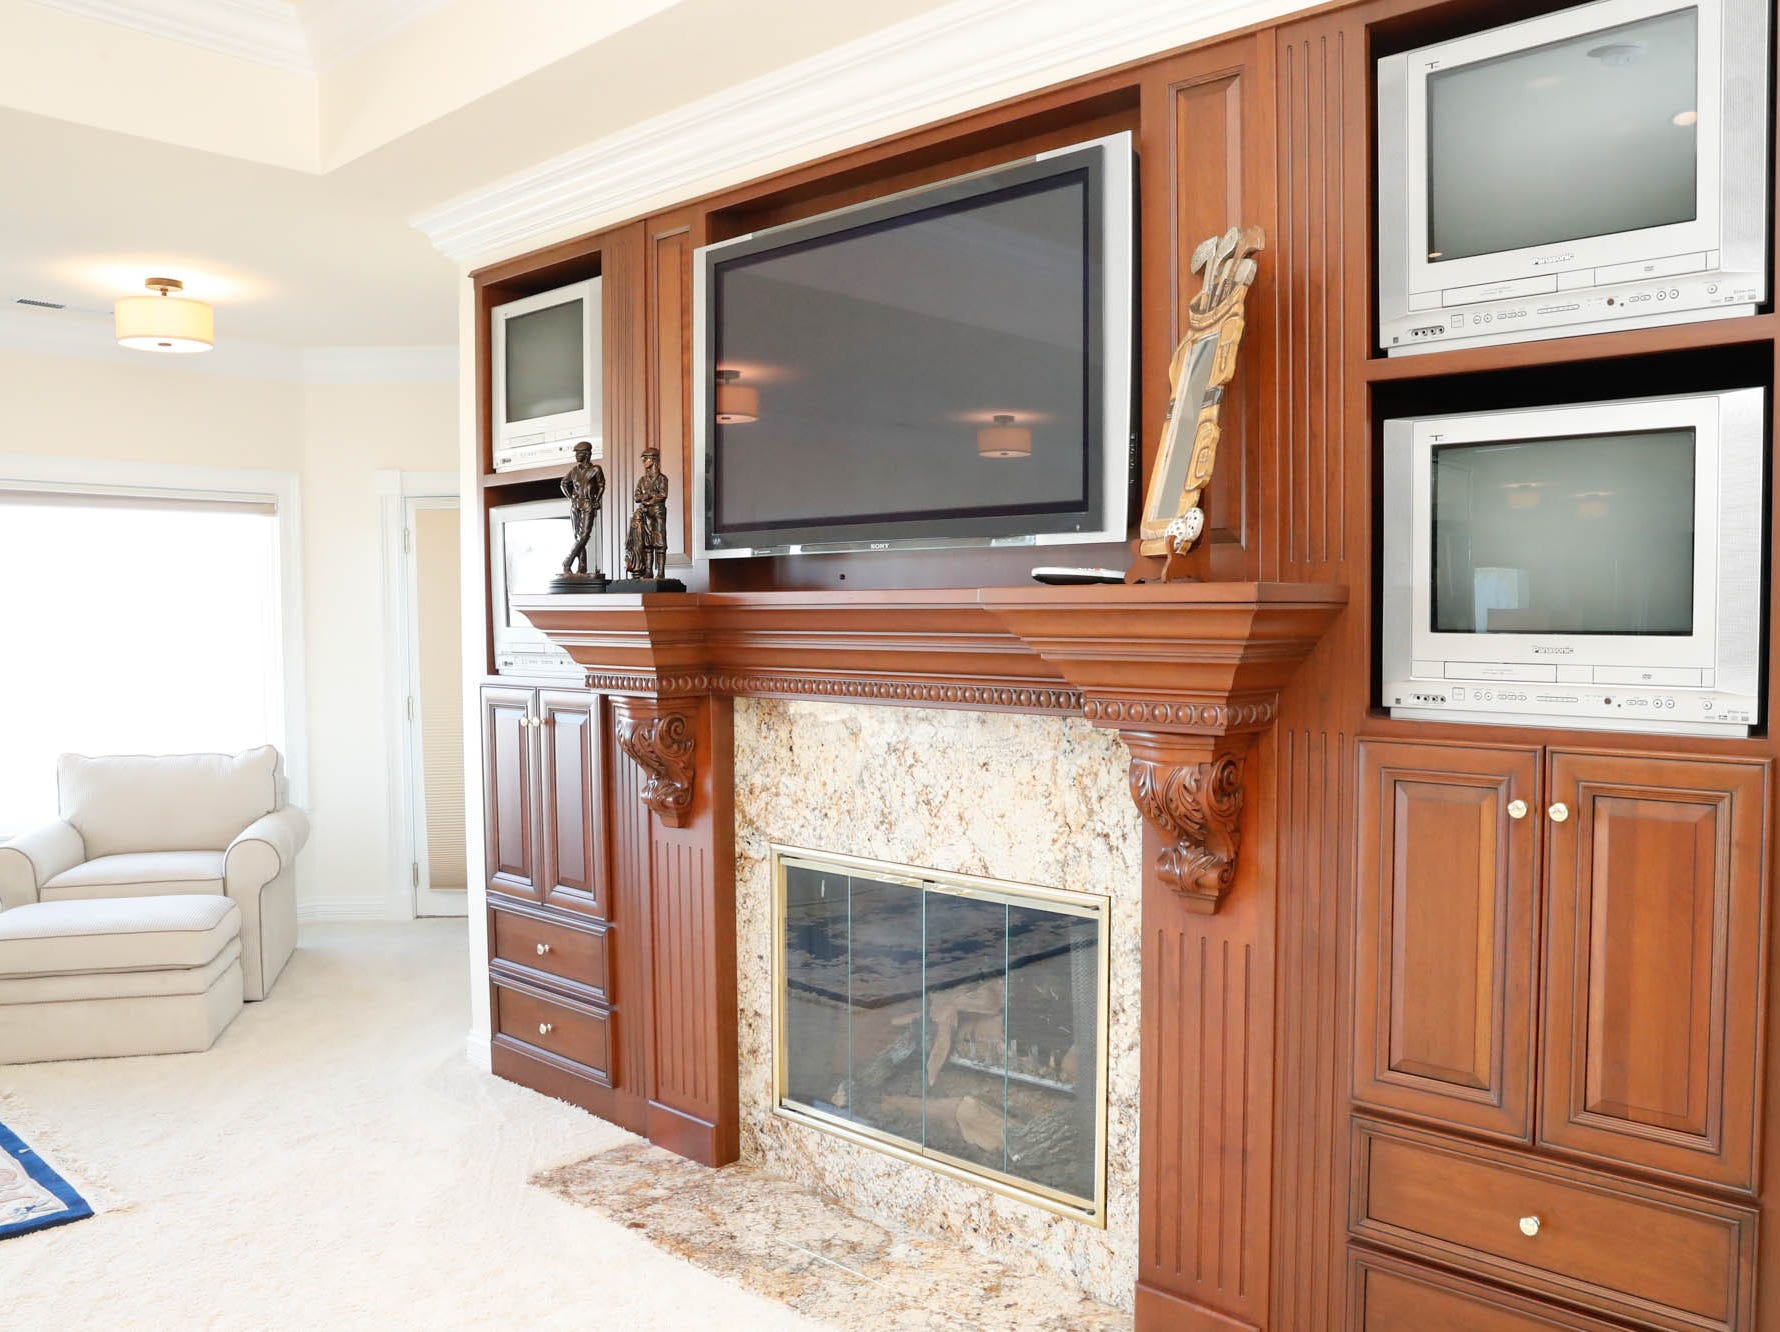 A second-floor master suite, one of two in the home, features a fireplace and five TVs, at a Greenwood home up for sale at 1216 Stone Ridge Court, Greenwood, Ind. on Wednesday, Jan. 30, 2019. The home features 8,234 square feet, four bedrooms, two master suites, a 10 car garage, and an exercise room.